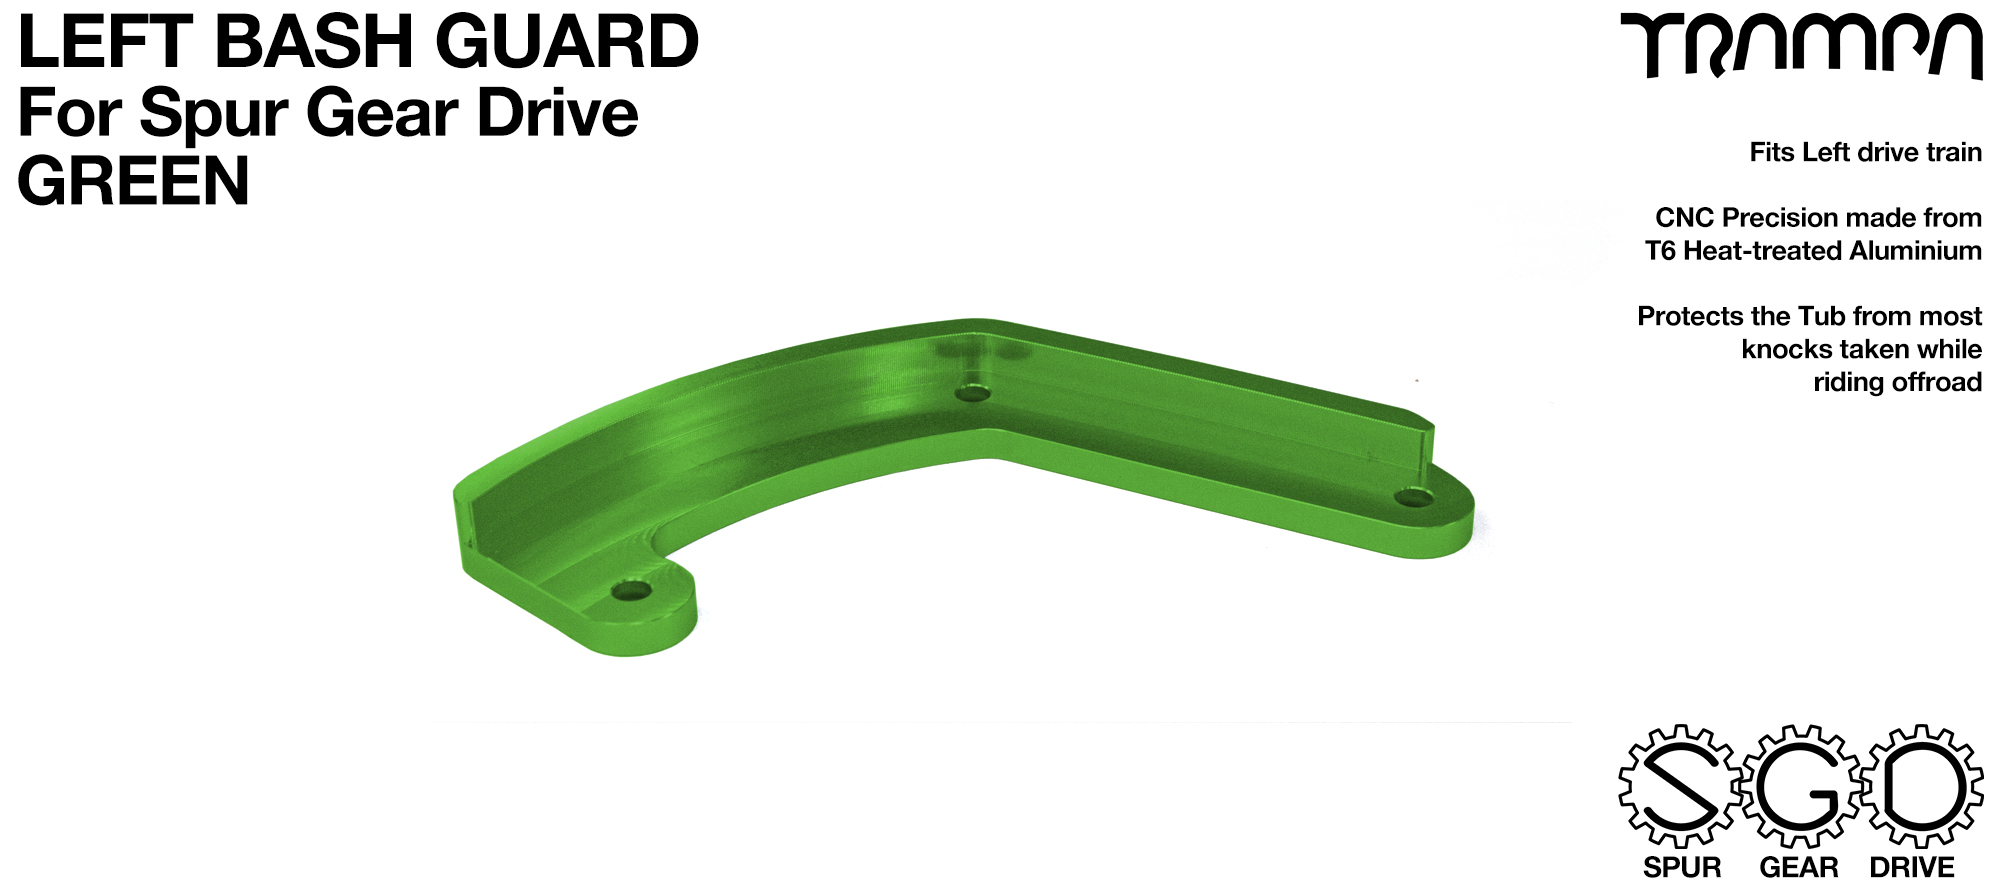 MkII Spur Gear Drive Bash Guard - LEFT Side - GREEN